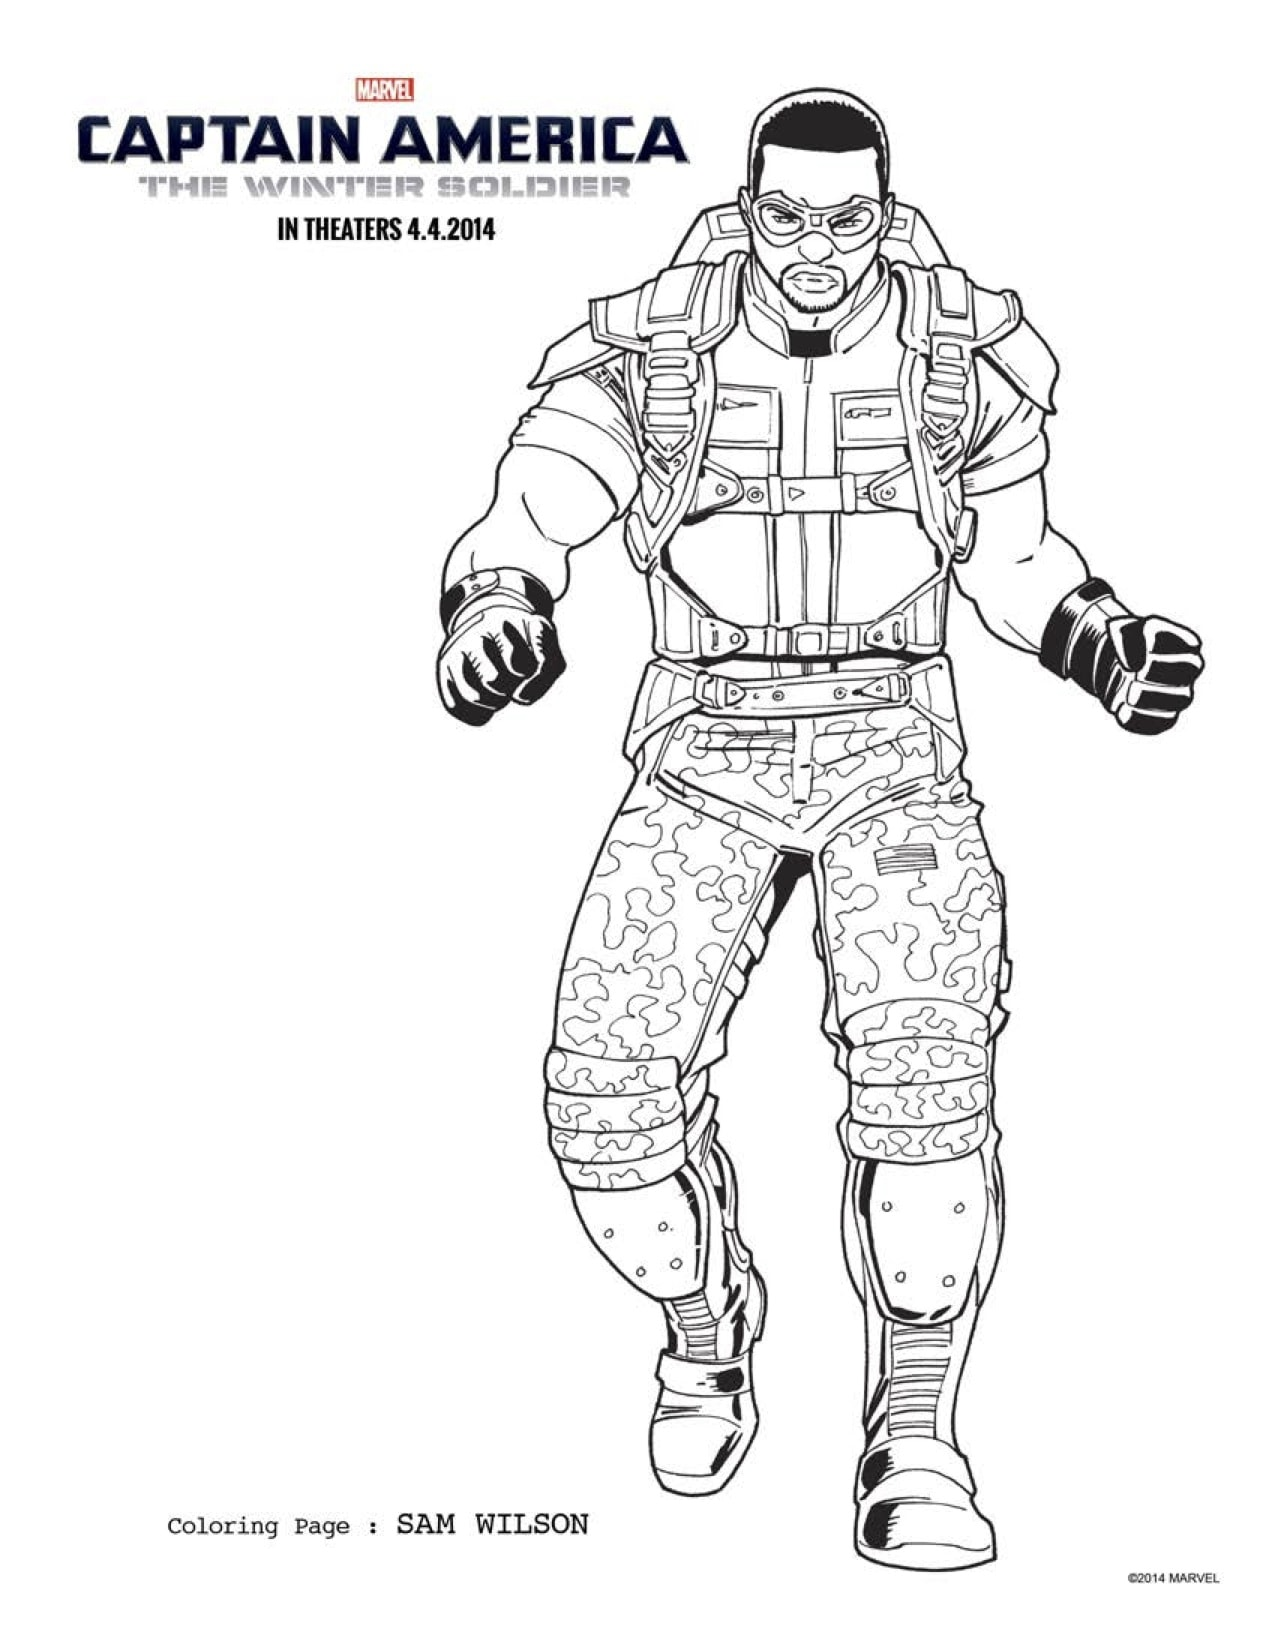 FREE Captain America 2 Coloring Pages: Download Printables